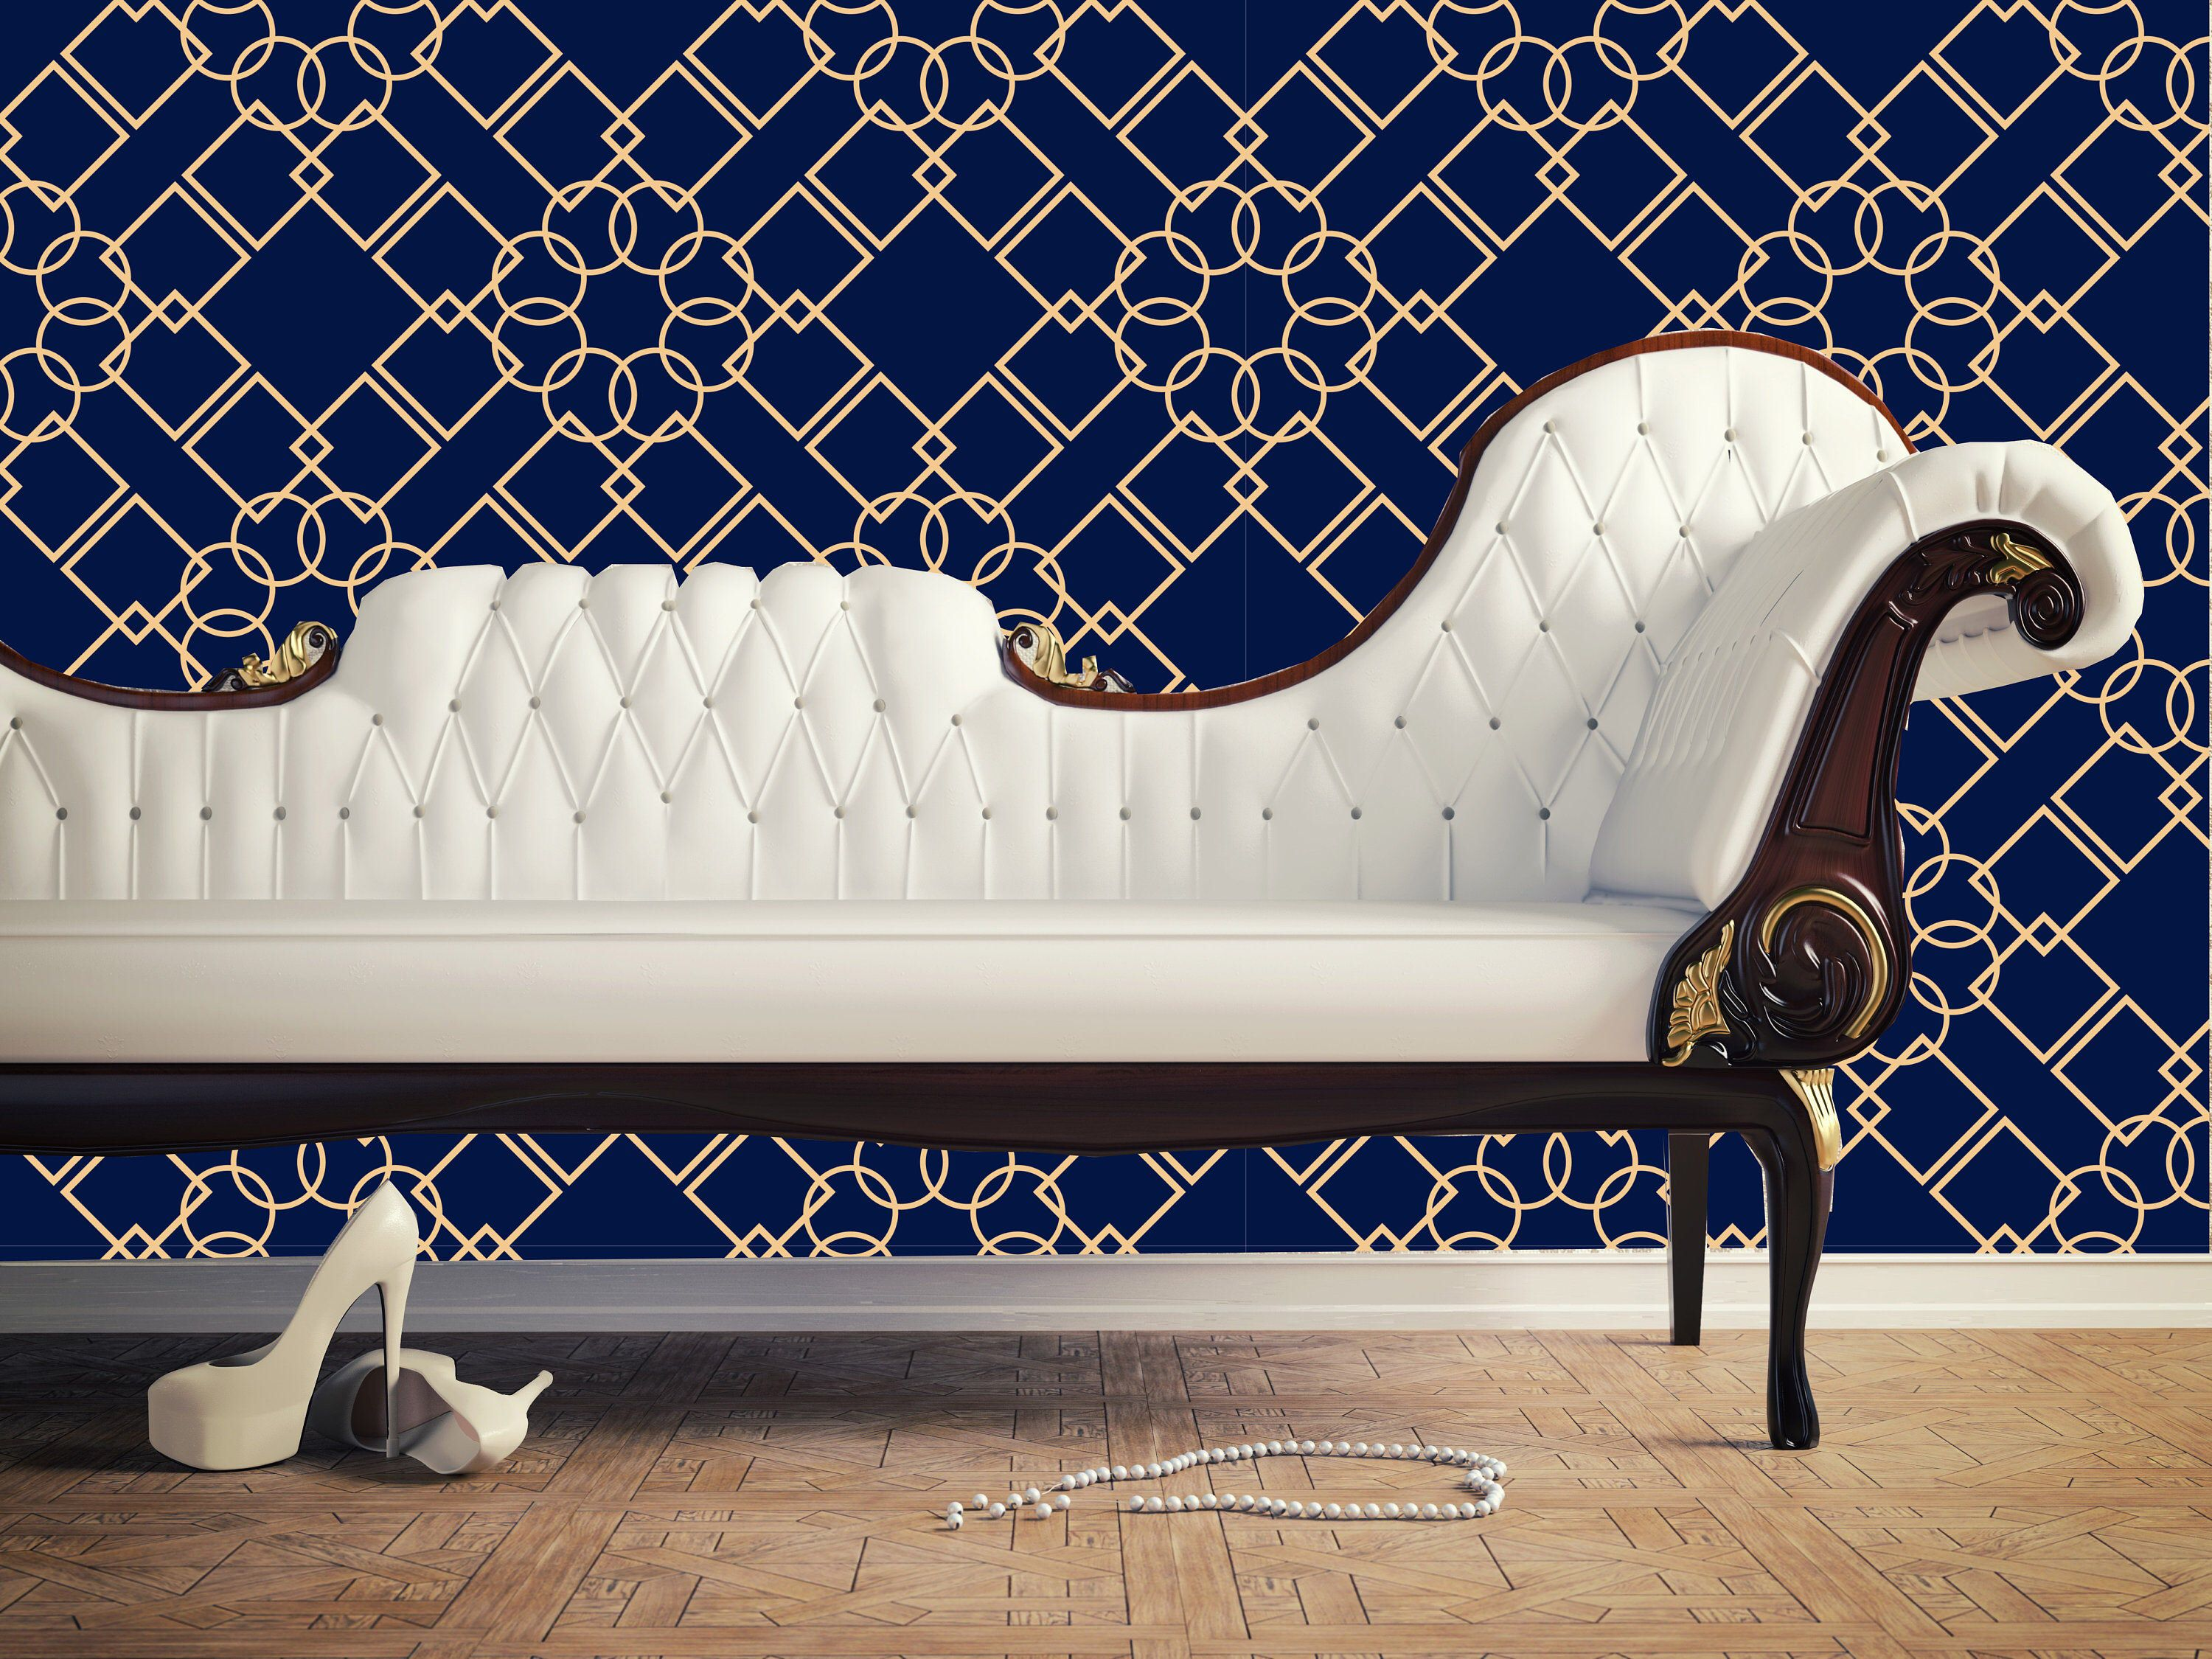 Modern Navy Blue Geometric Removable Wallpaper, Peel and